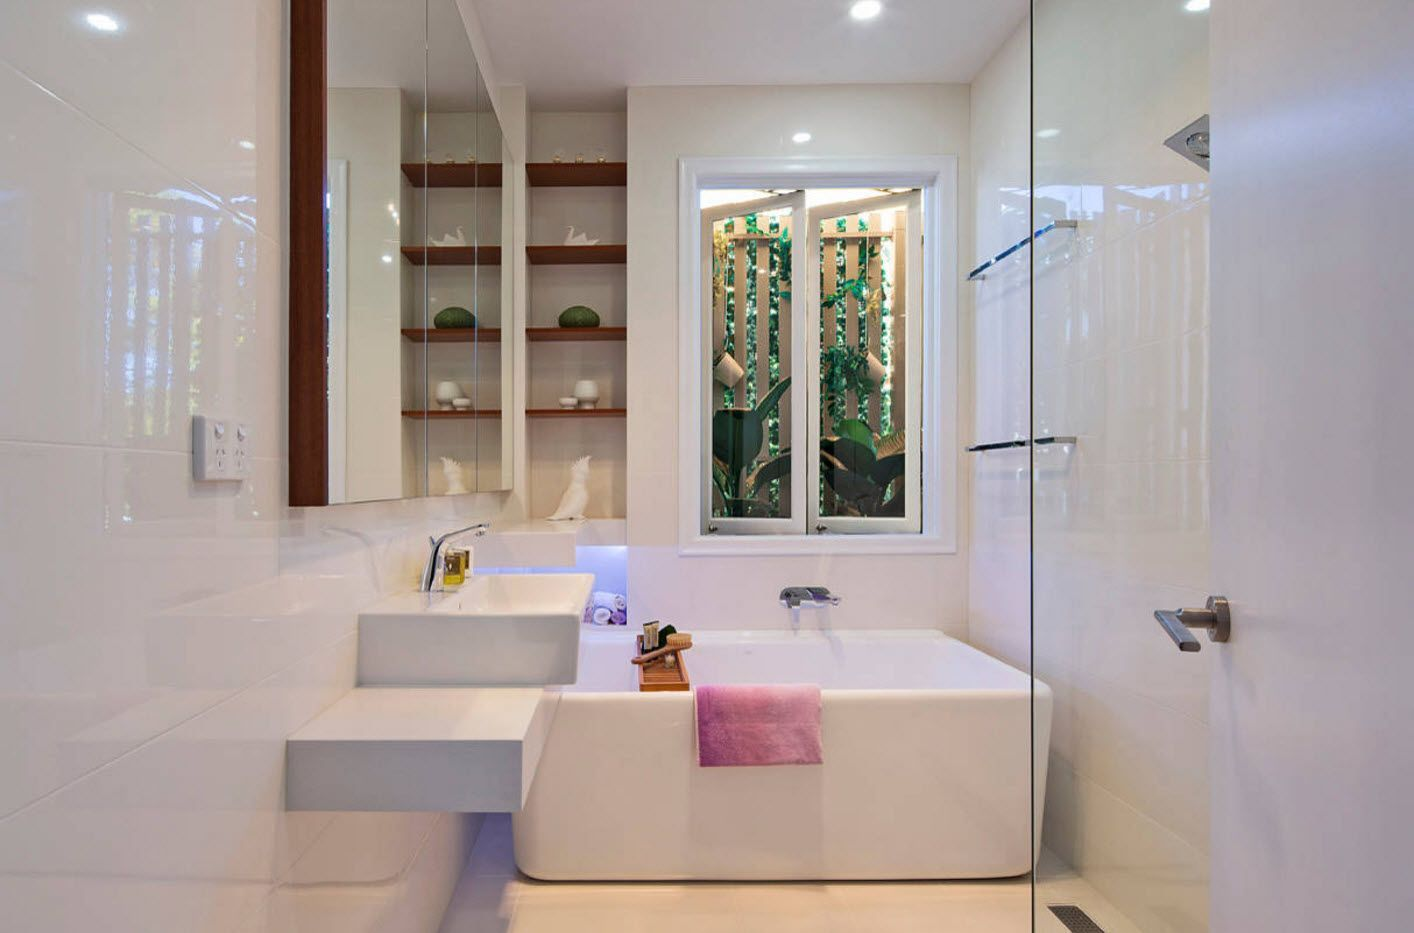 Leveled zones of the modern rounded forms of the bathroom accessories